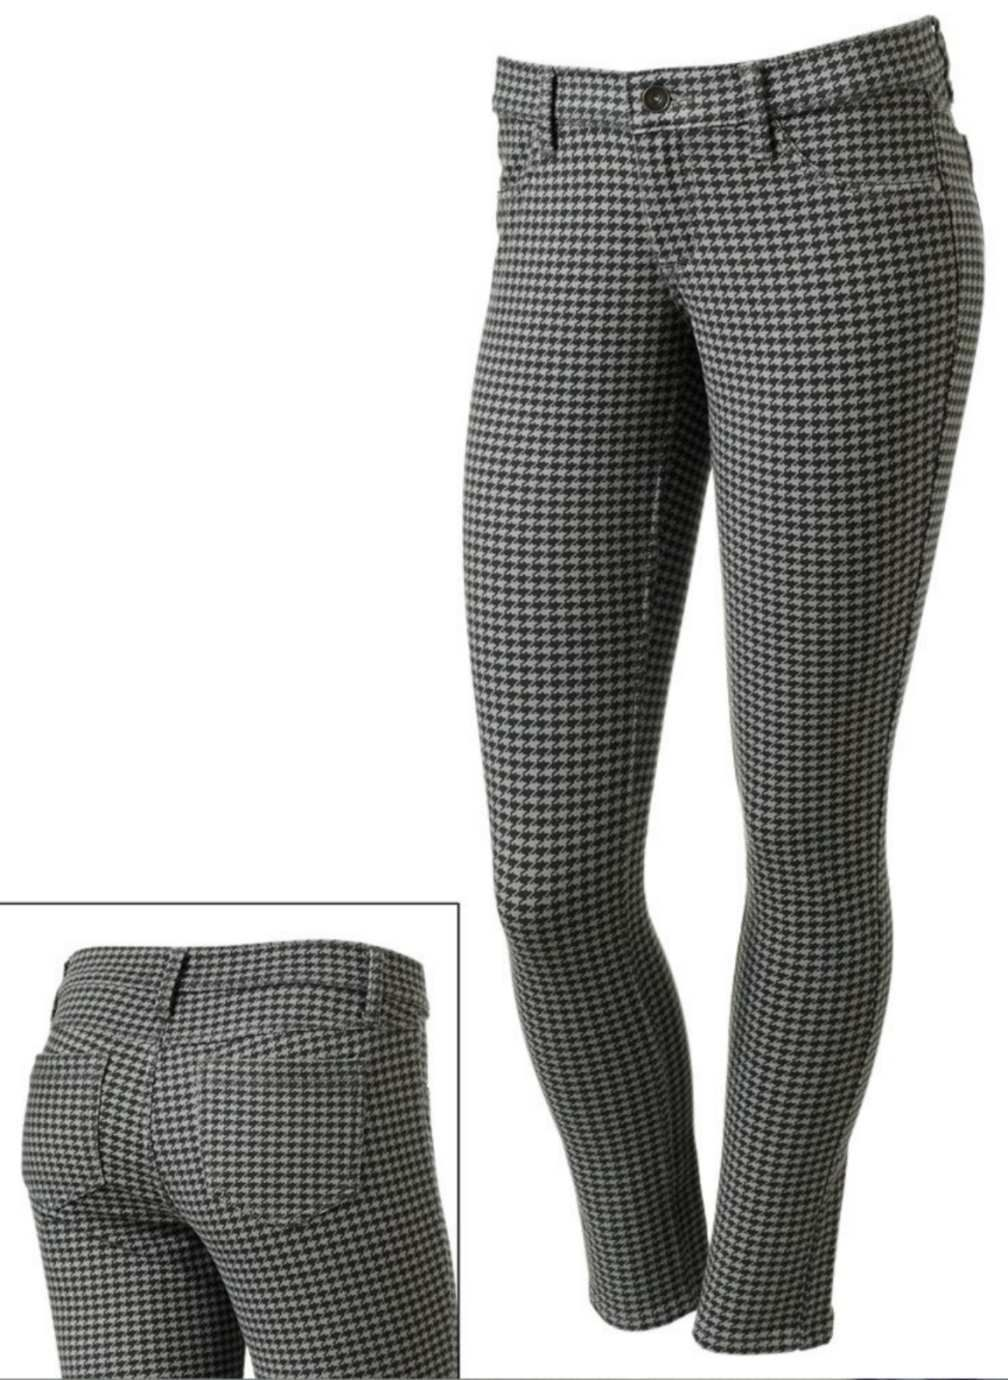 MUDD Skinny Stretch Jeggings-Houndstooth Legging Pant-Gray Black- 3 New $40 image 7